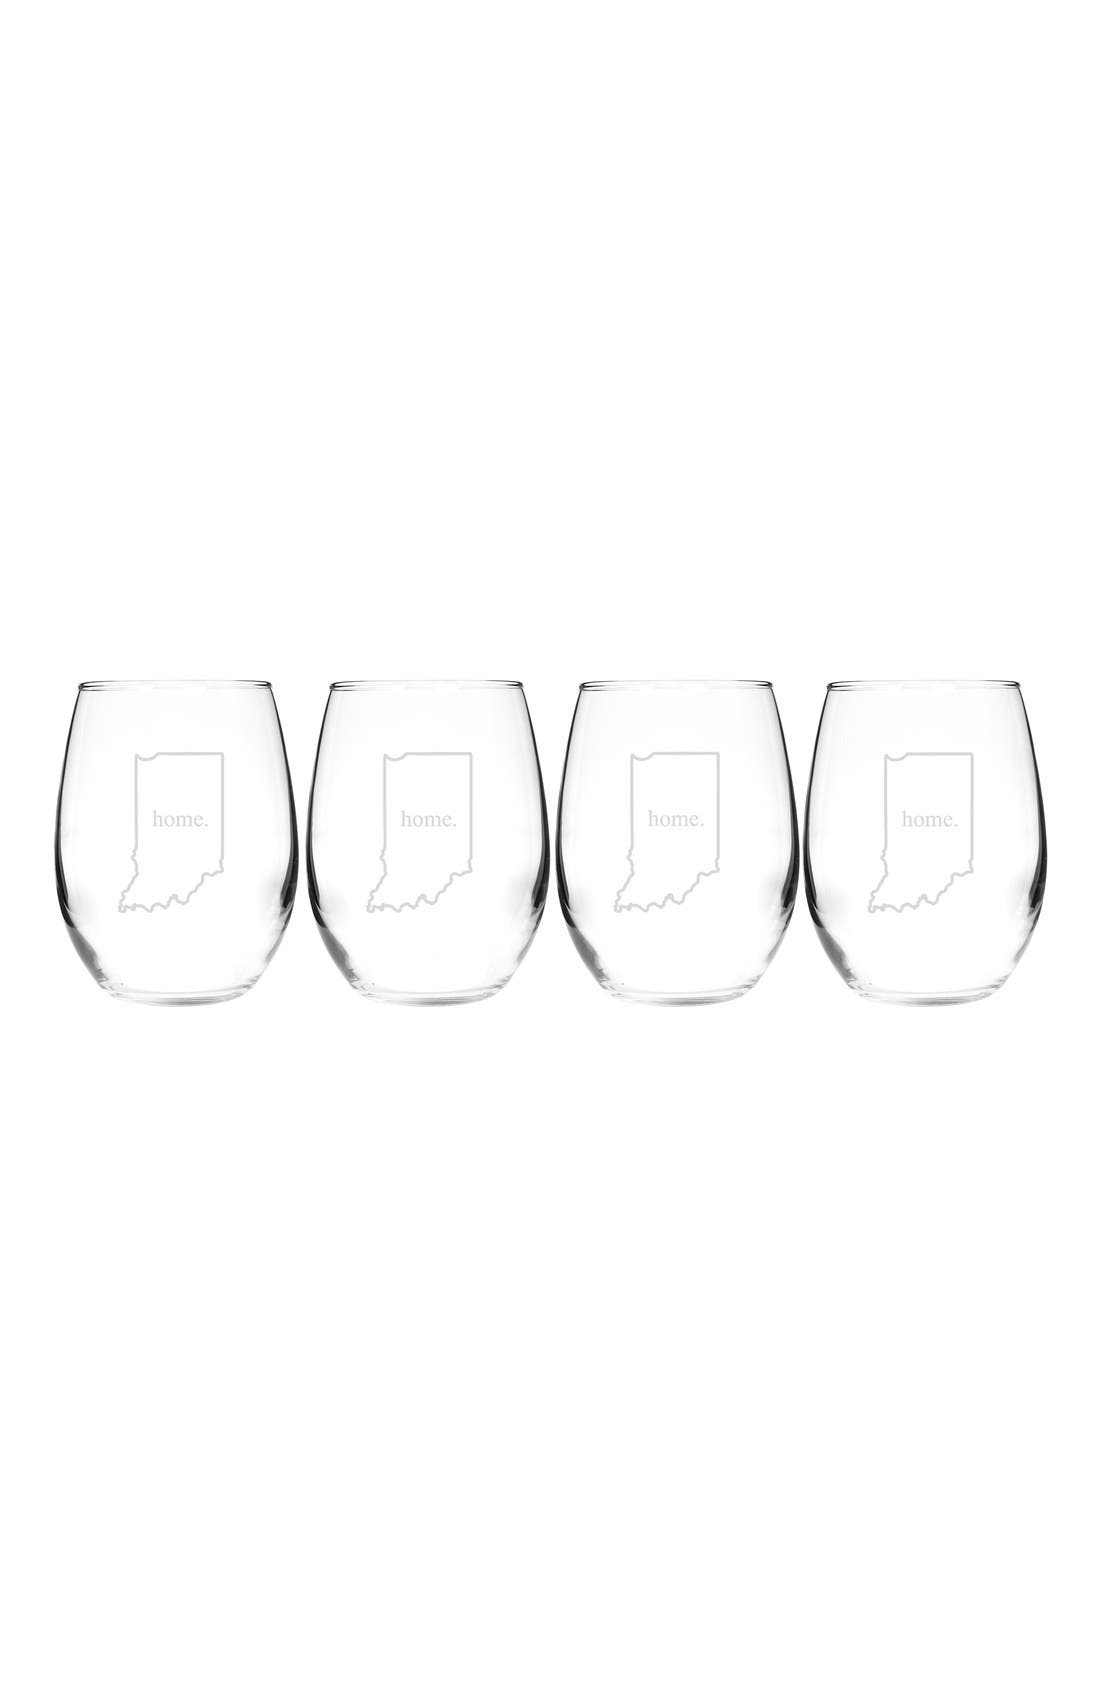 Home State Set of 4 Stemless Wine Glasses,                             Main thumbnail 16, color,